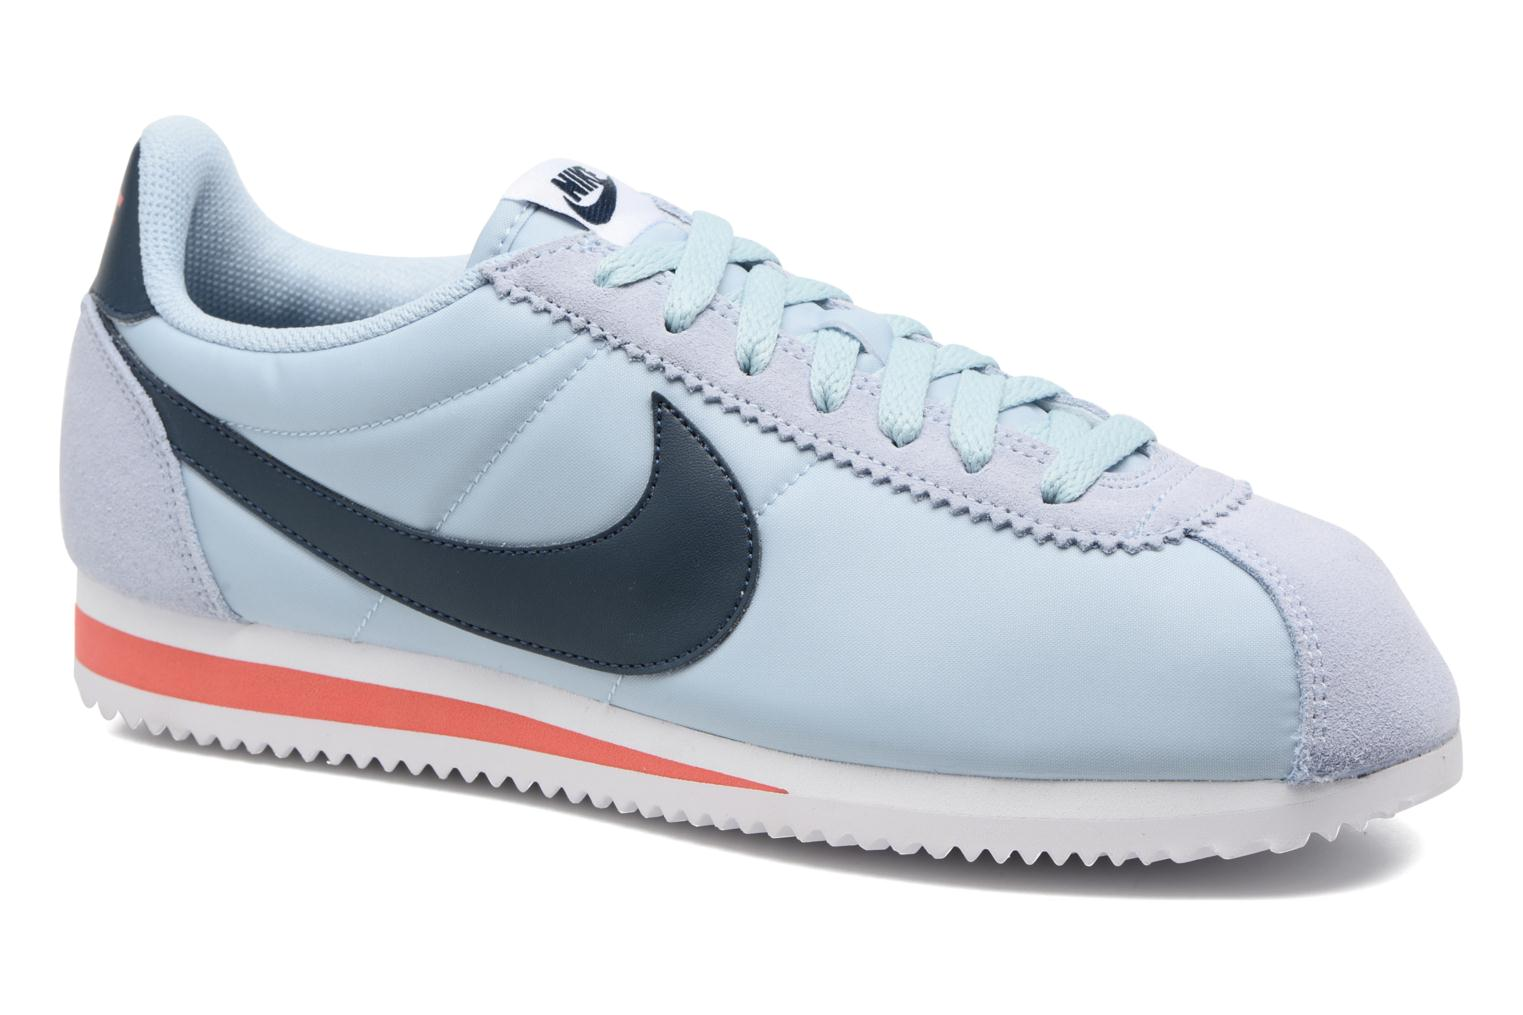 Classic Cortez Nylon LT ARMORY BLUE/ARMORY NAVY-WHITE